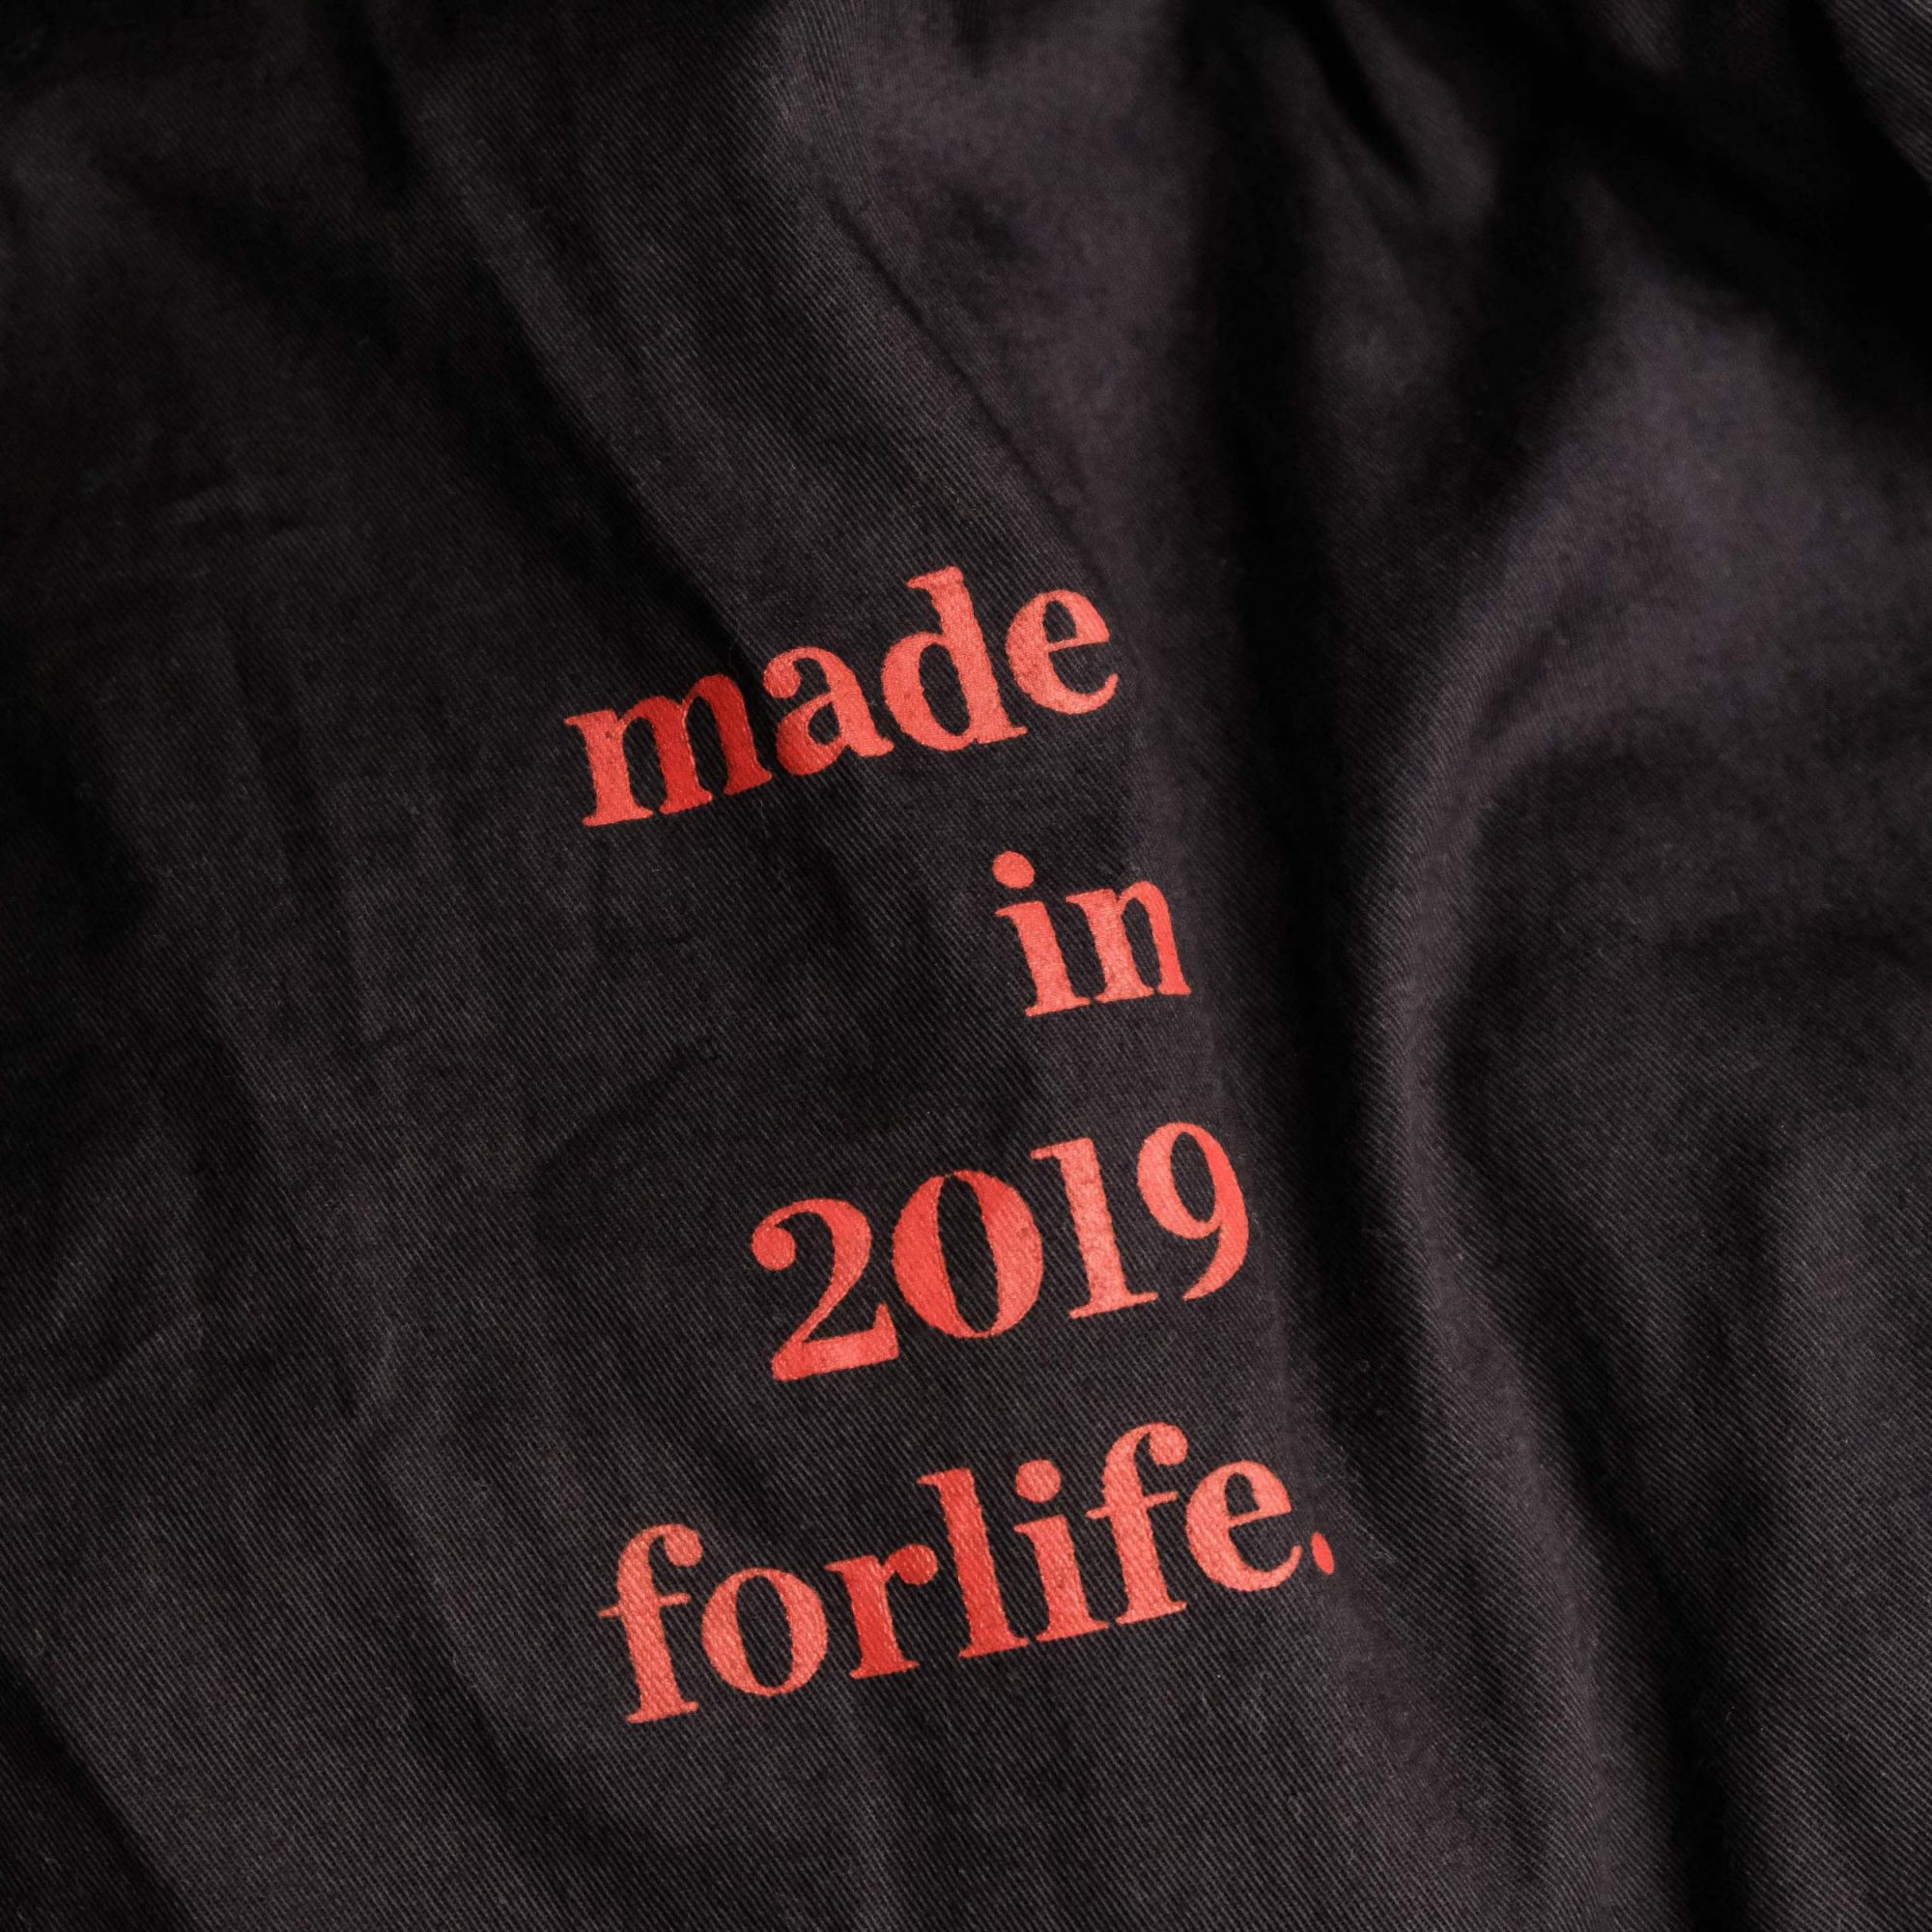 made in 2019 forlife